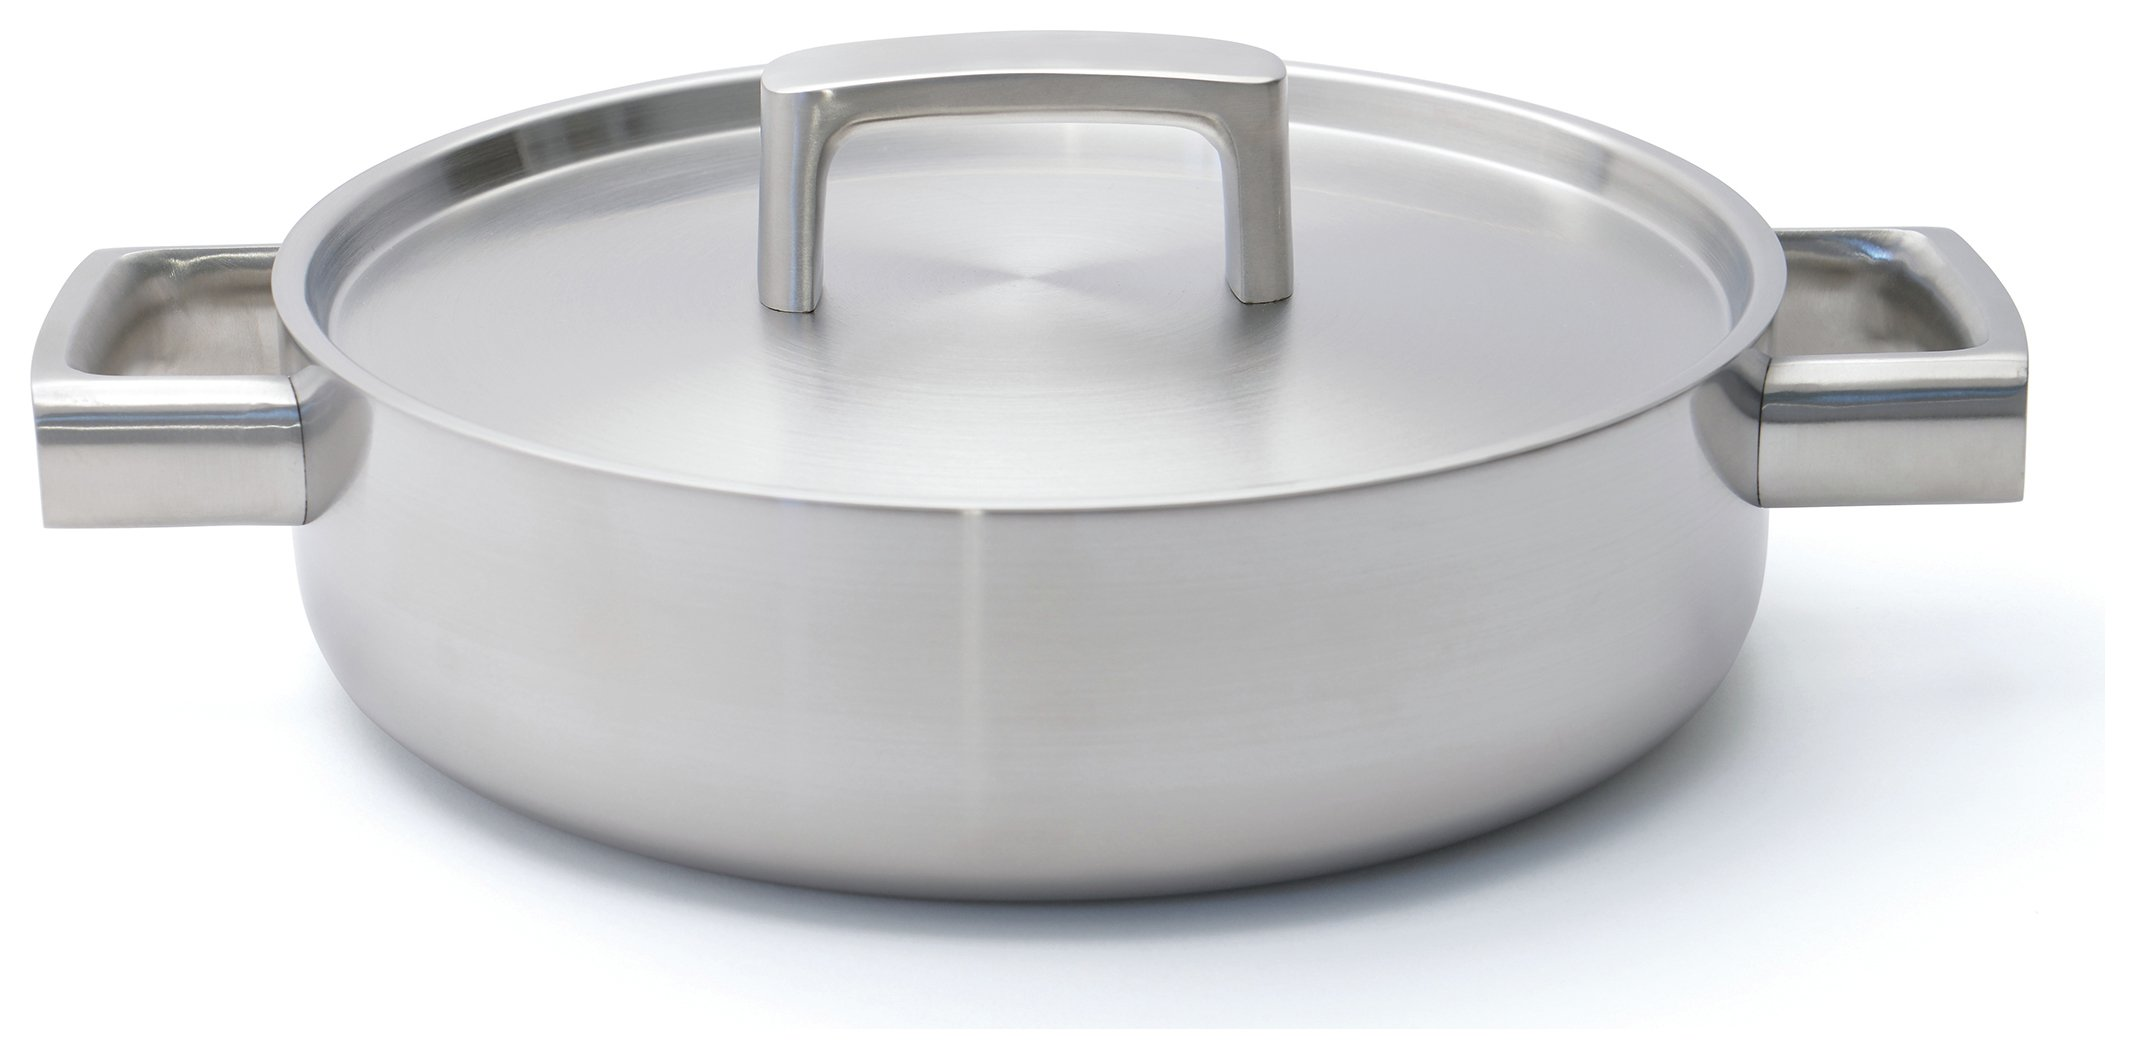 Image of BergHOFF 24cm Stainless Steel 5-Ply Sauteuse Pan.